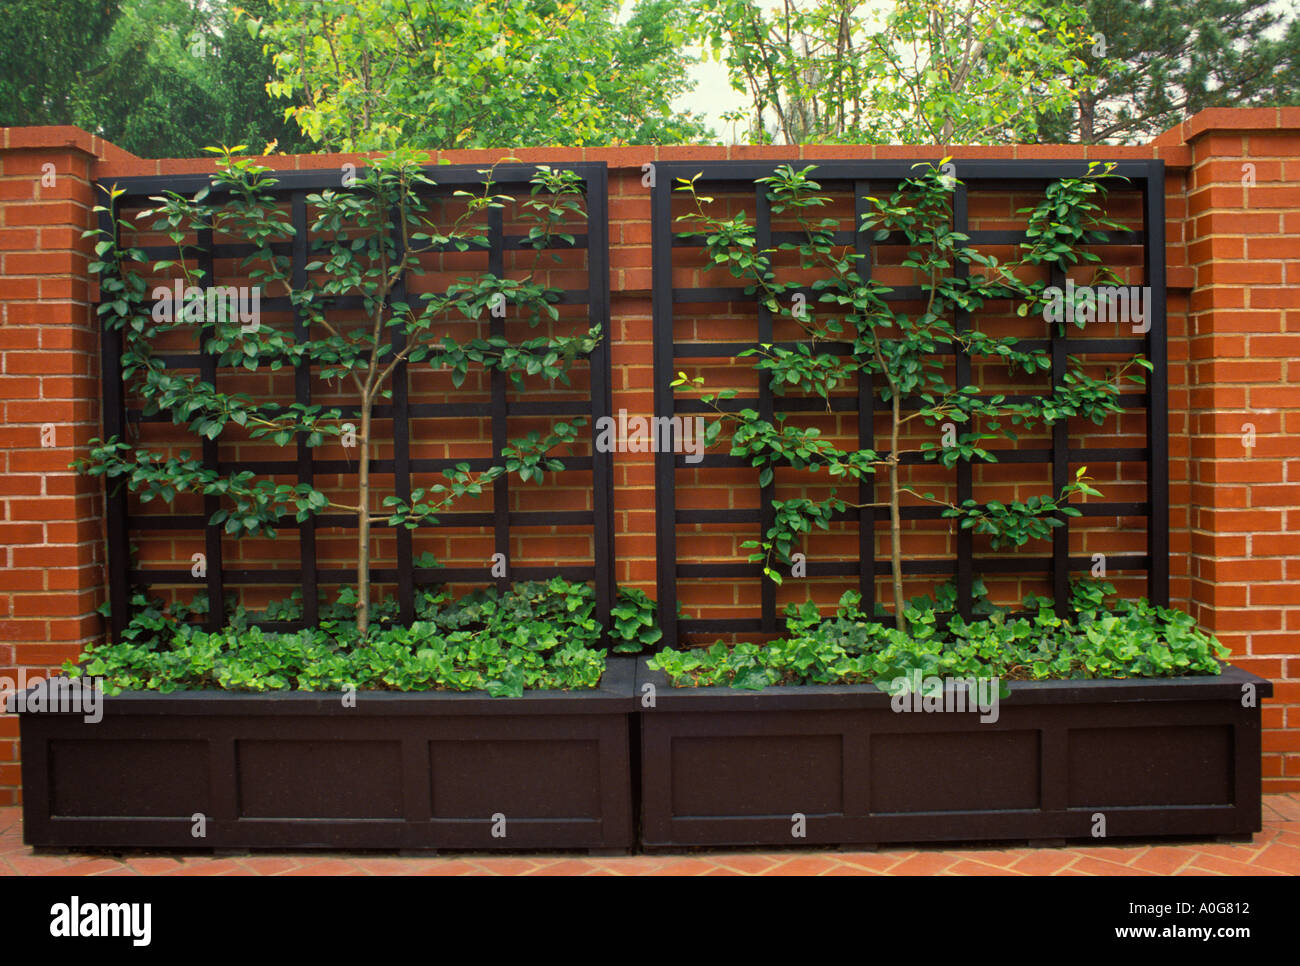 Formal Brick Courtyard Wall With Espaliered Pear Tree On